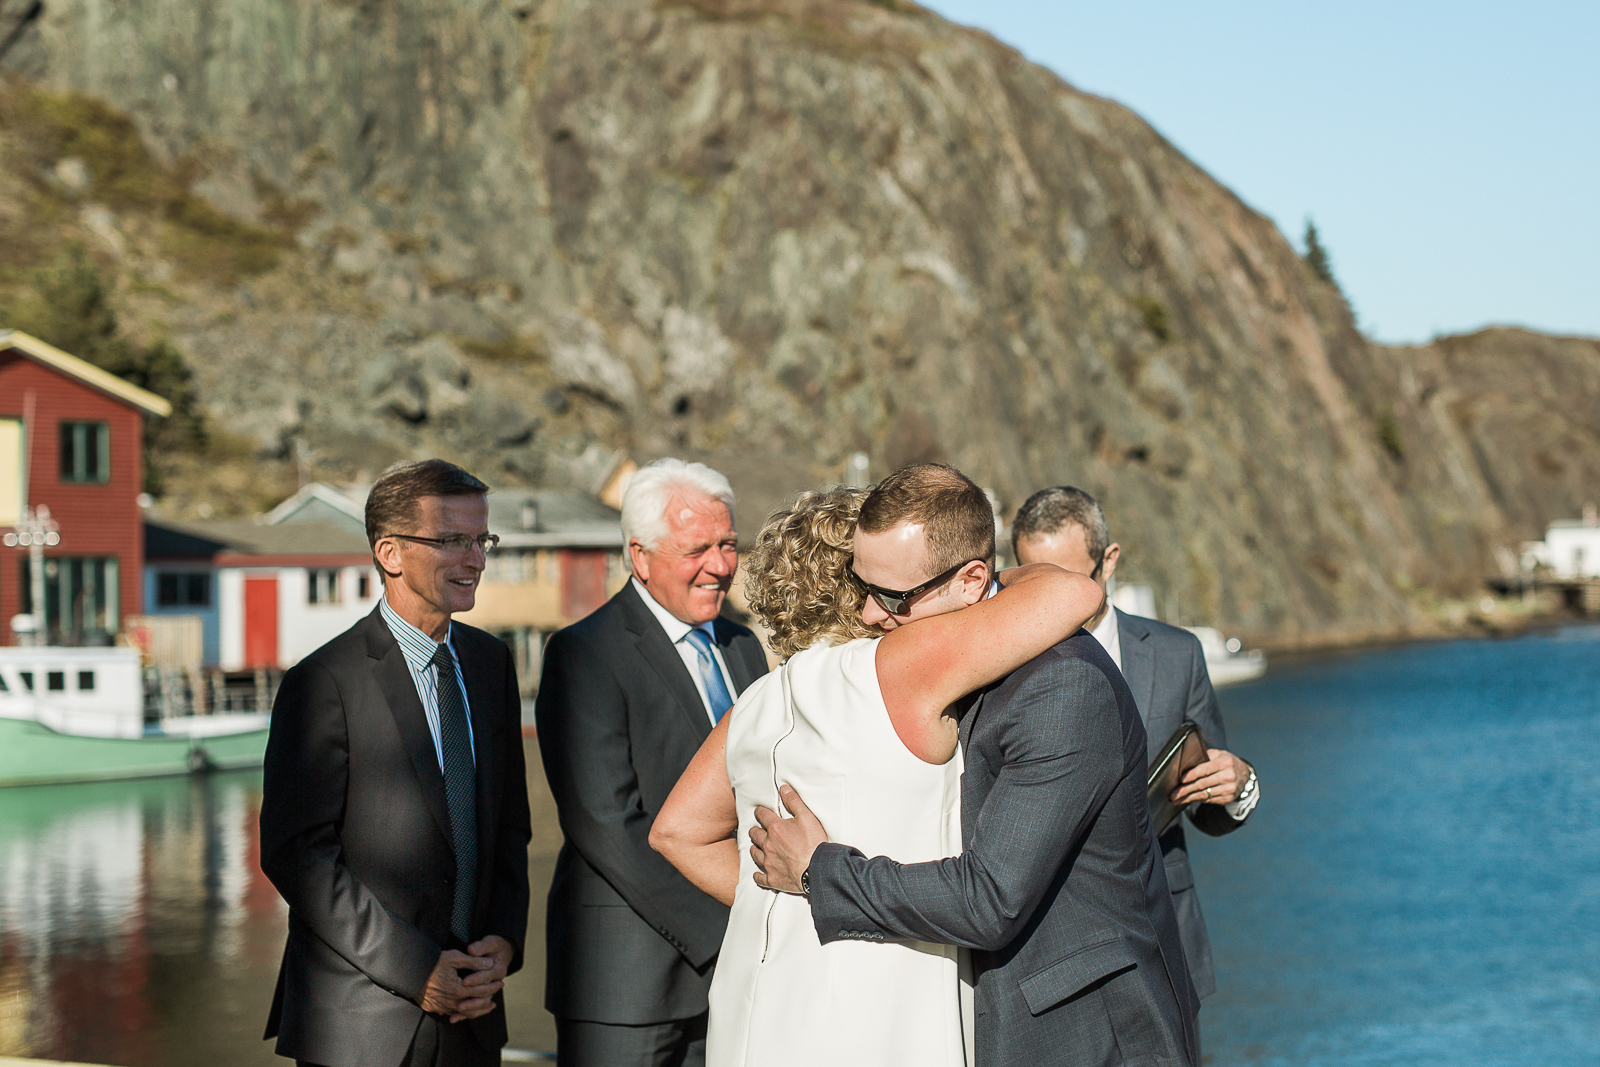 quidi-vidi-wedding-photographer-michelle-don-8.jpg